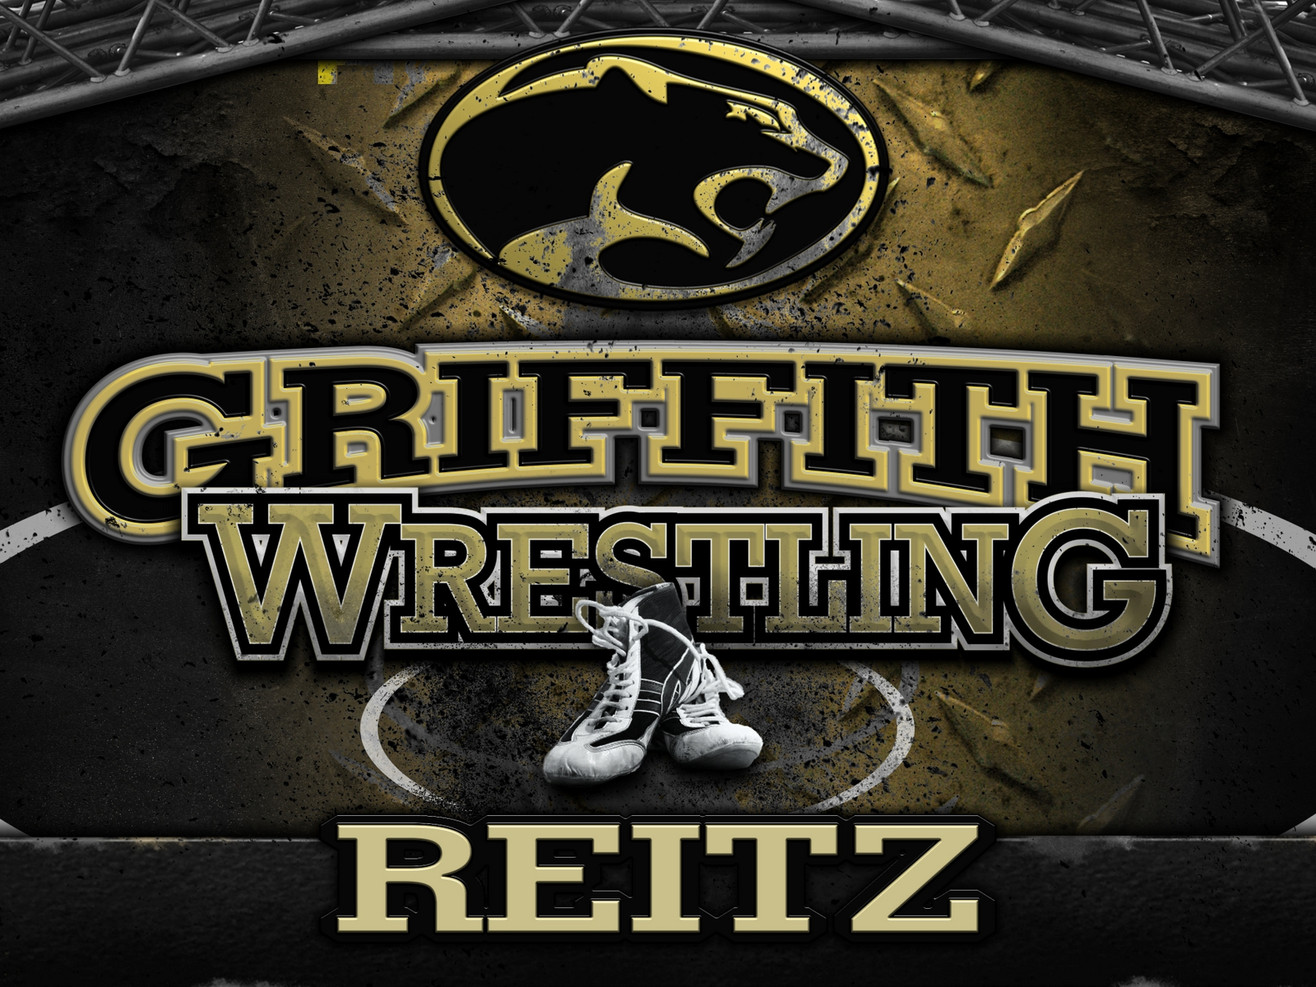 04-GRIFFITH WRESTLING.jpg